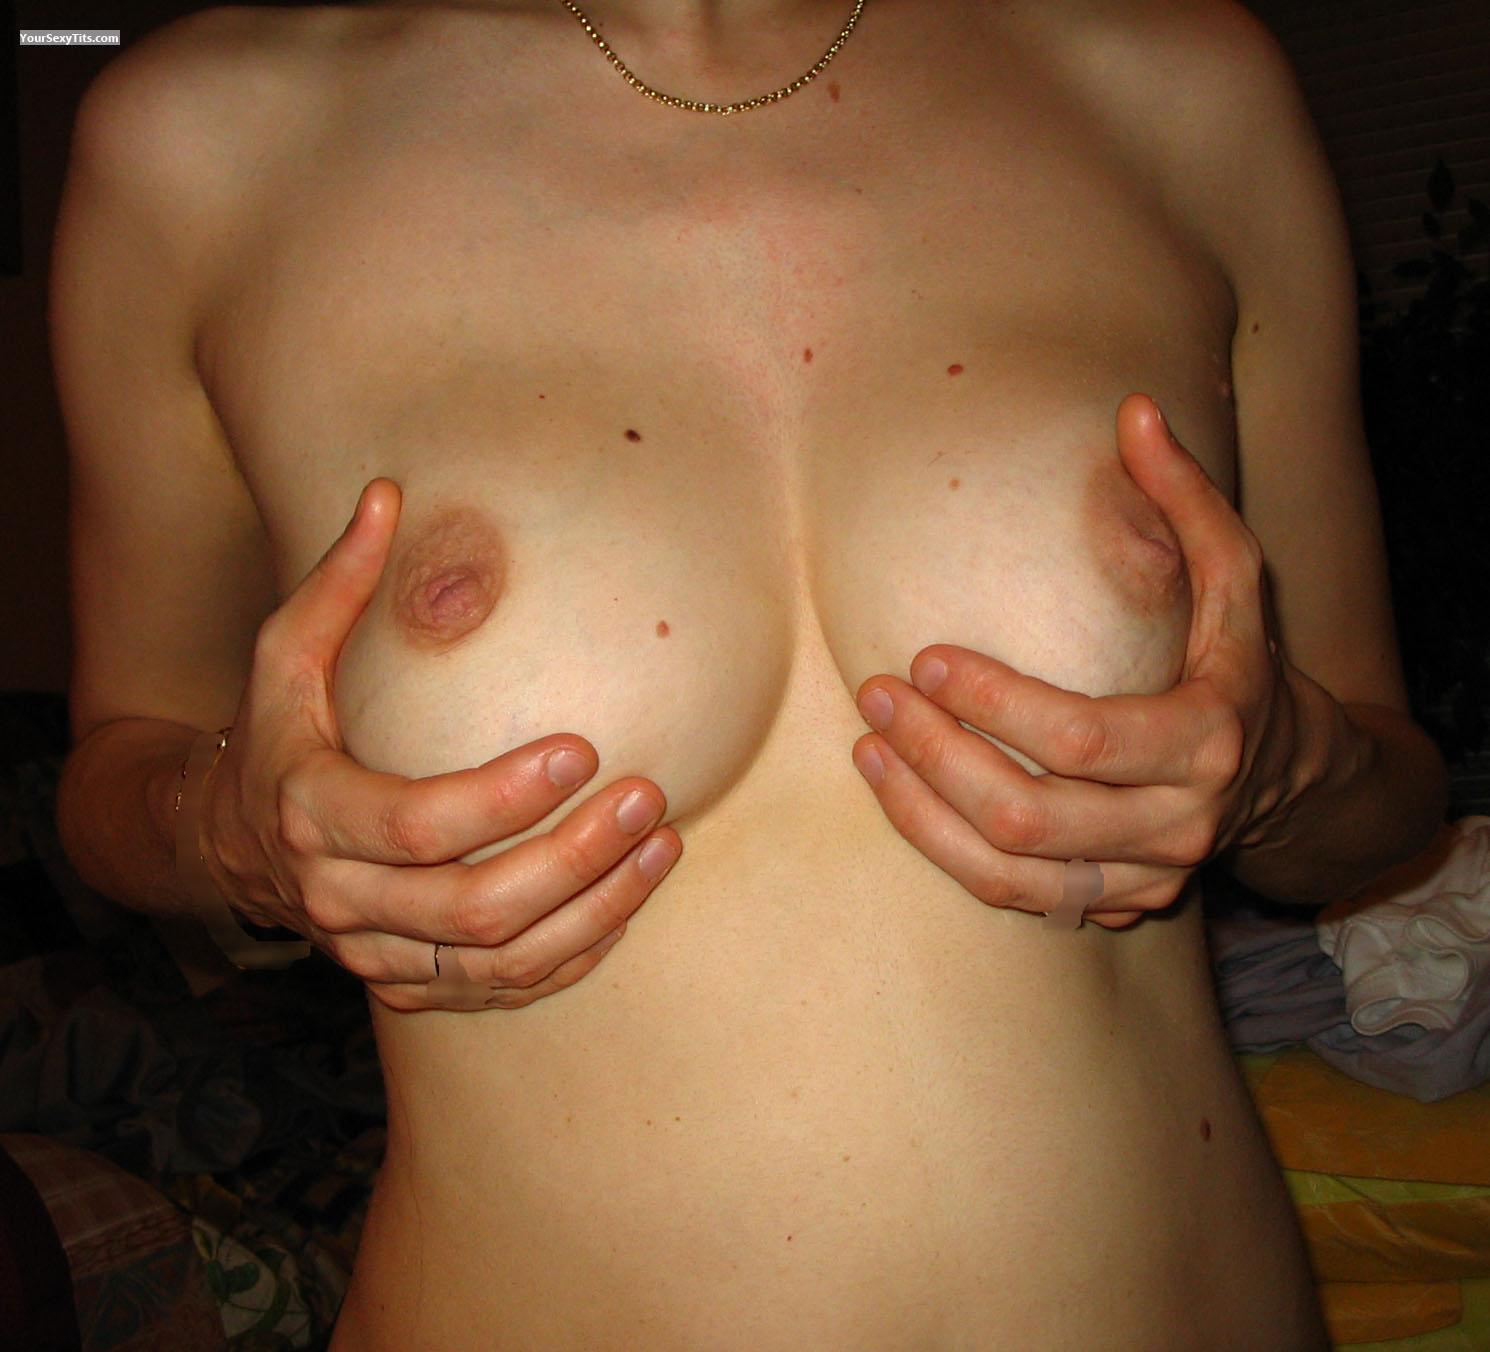 Tit Flash: Medium Tits - Wagner from Belgium